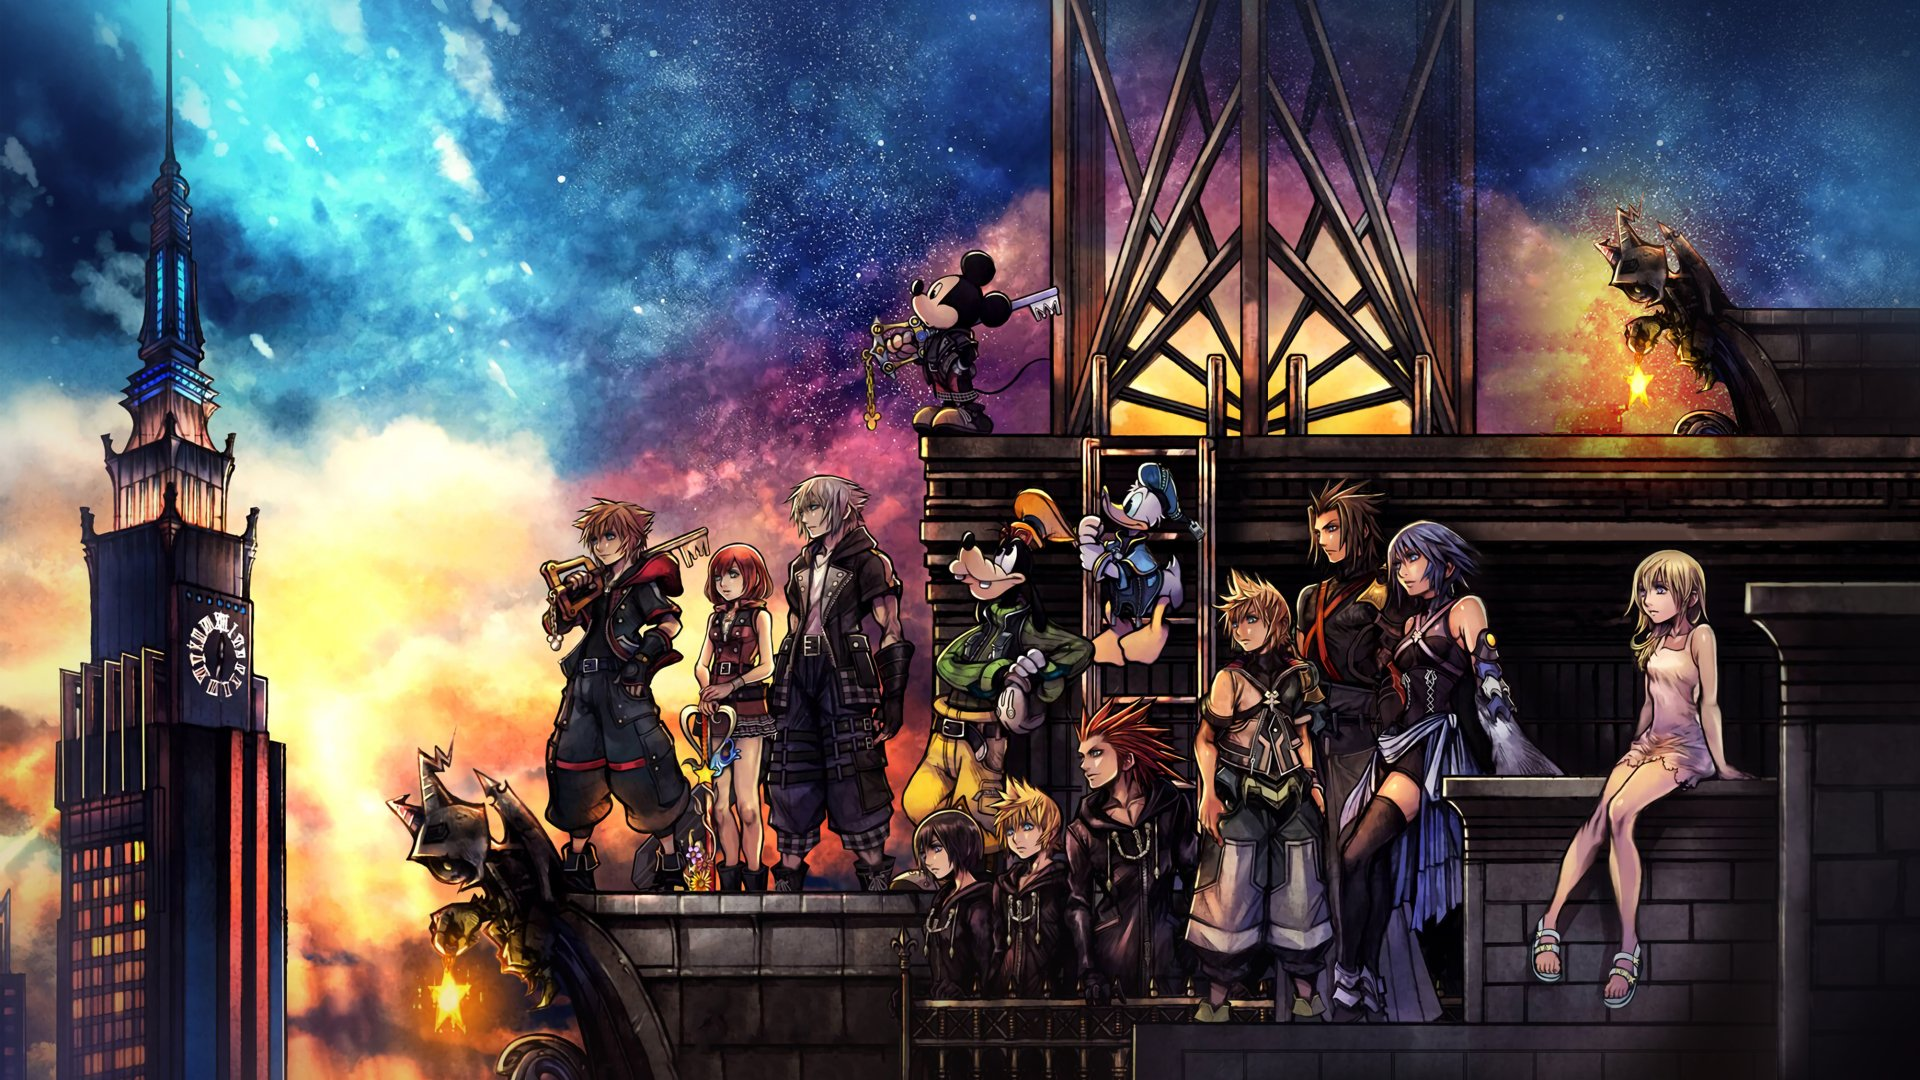 90+ Kingdom Hearts Wallpaper ideas for You